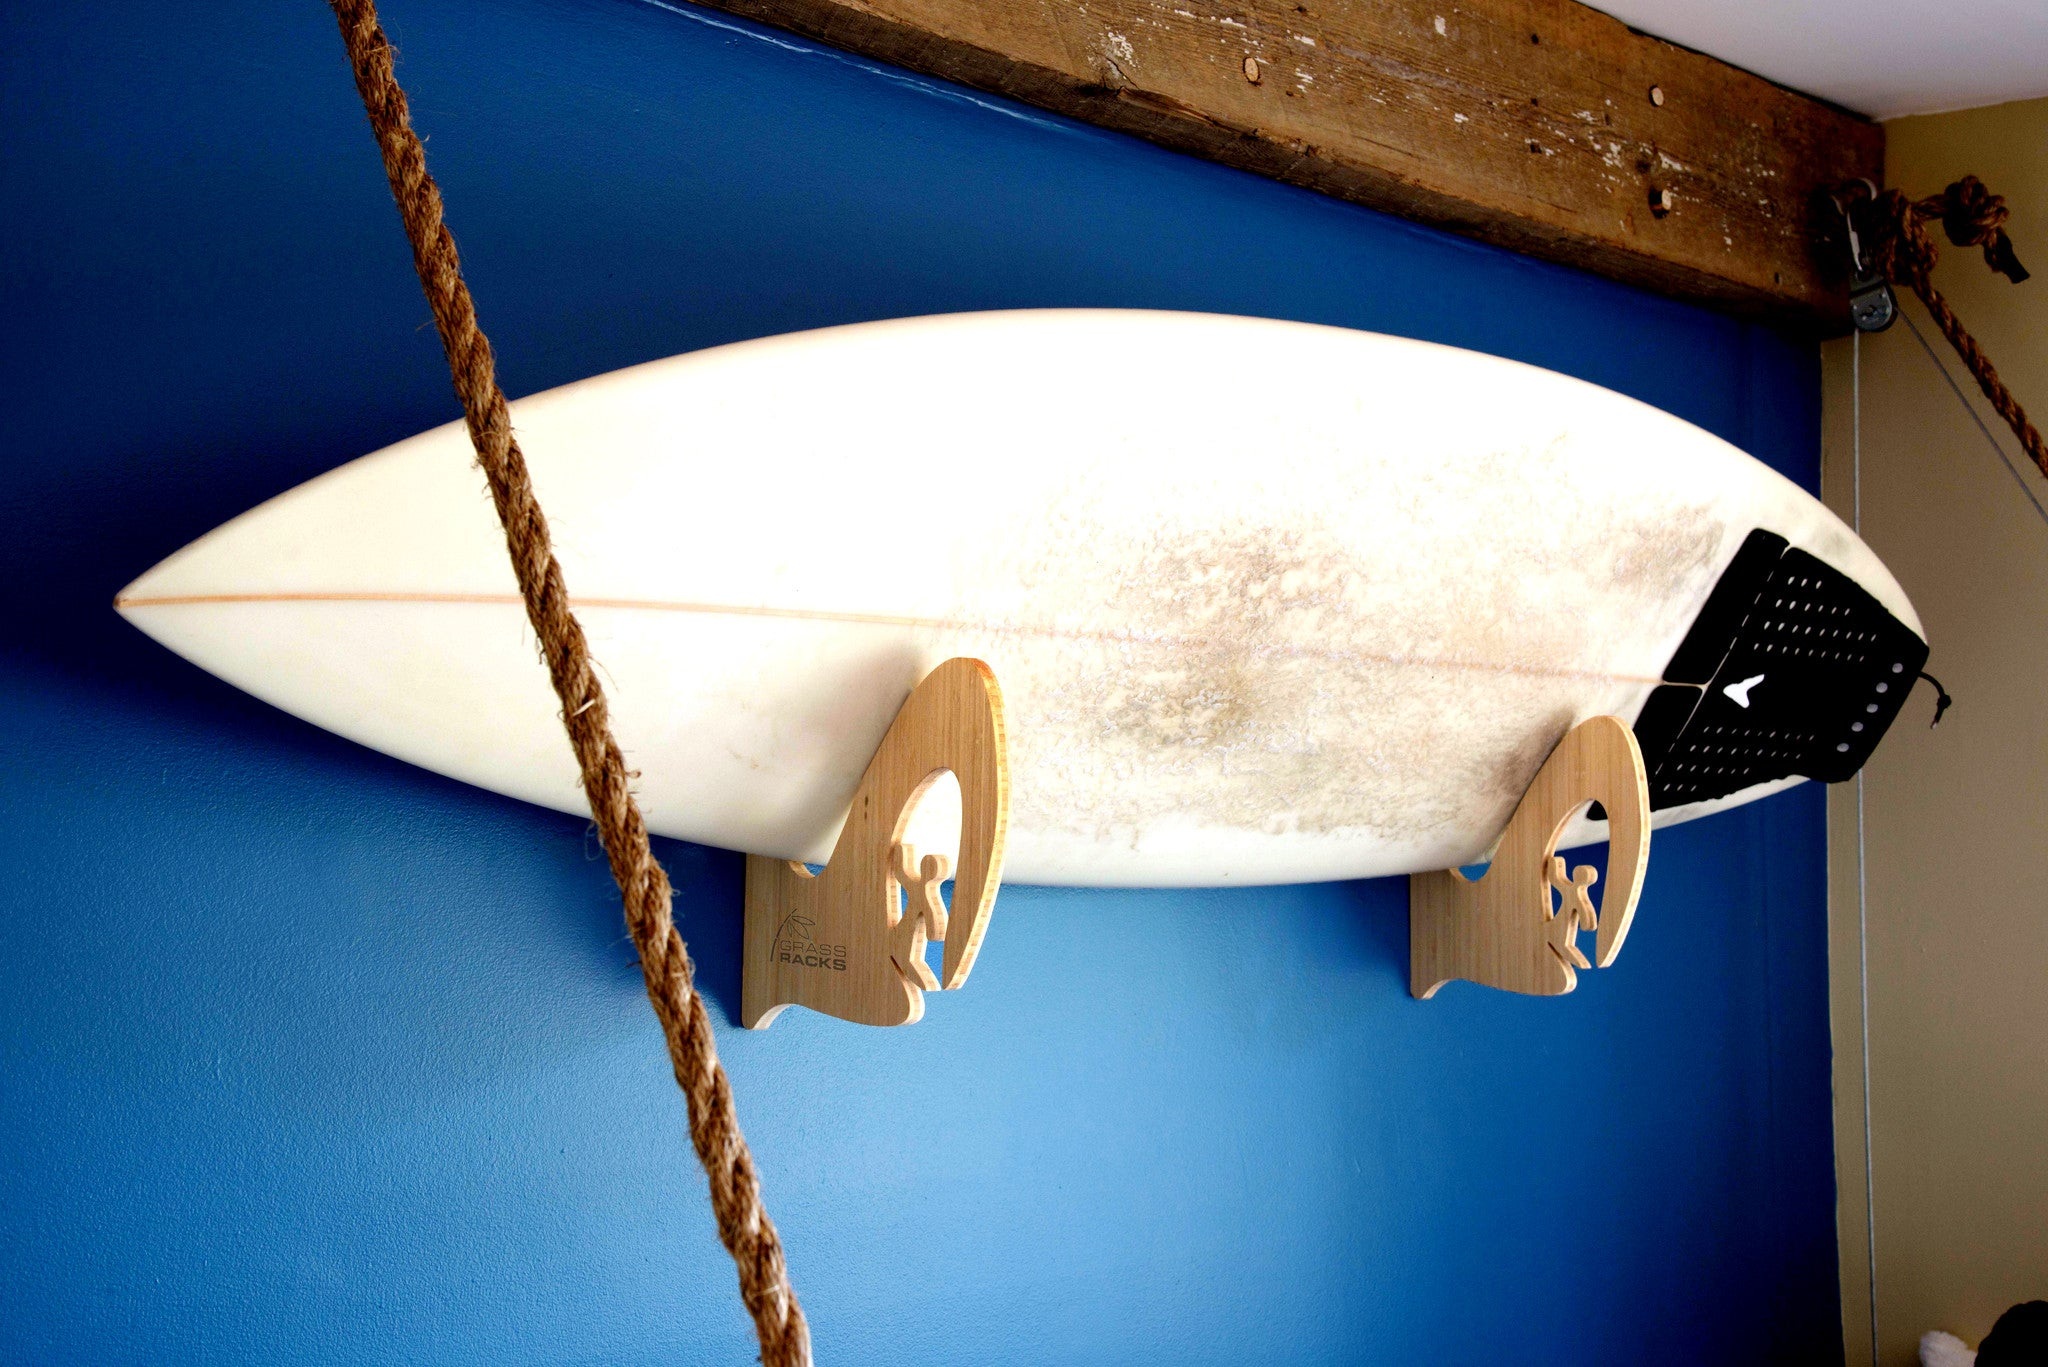 wooden kalalou racks coat colorful htm productdetail to mounted hover surfboards wall rack zoom surfboard